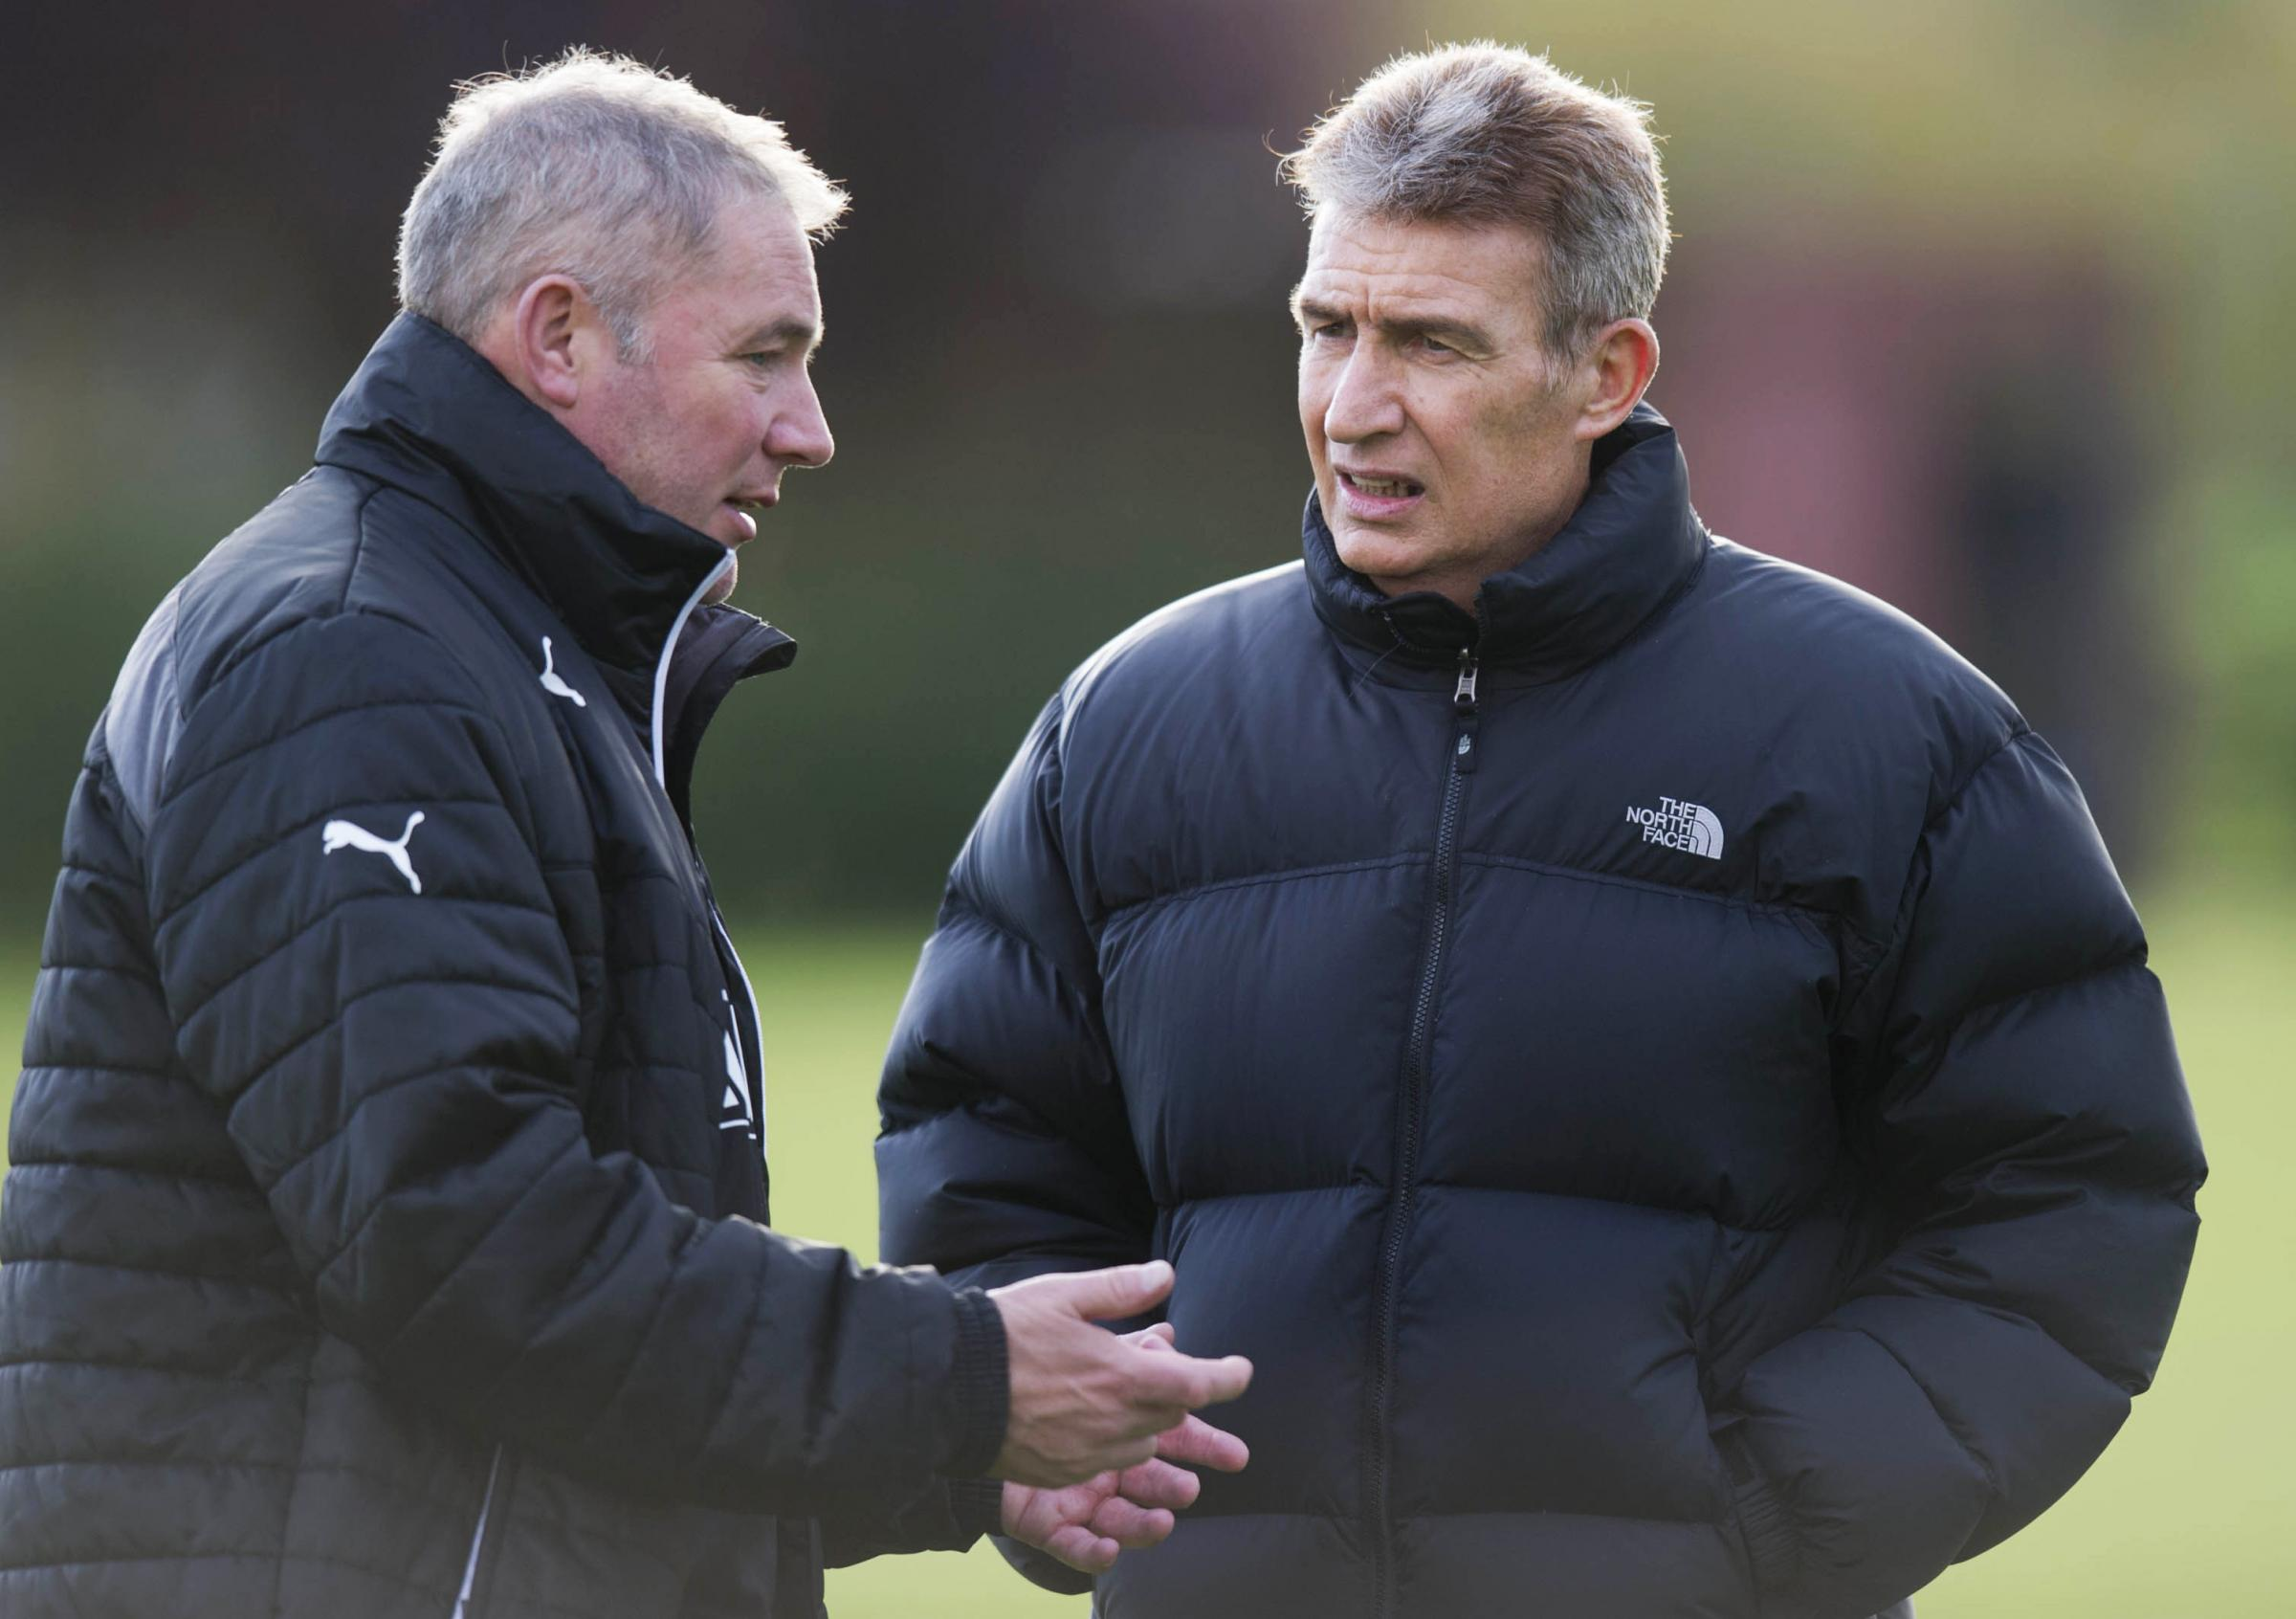 Going for 55: Ally McCoist reflects on Sandy Jardine's Rangers influence and remembers Absent Friends